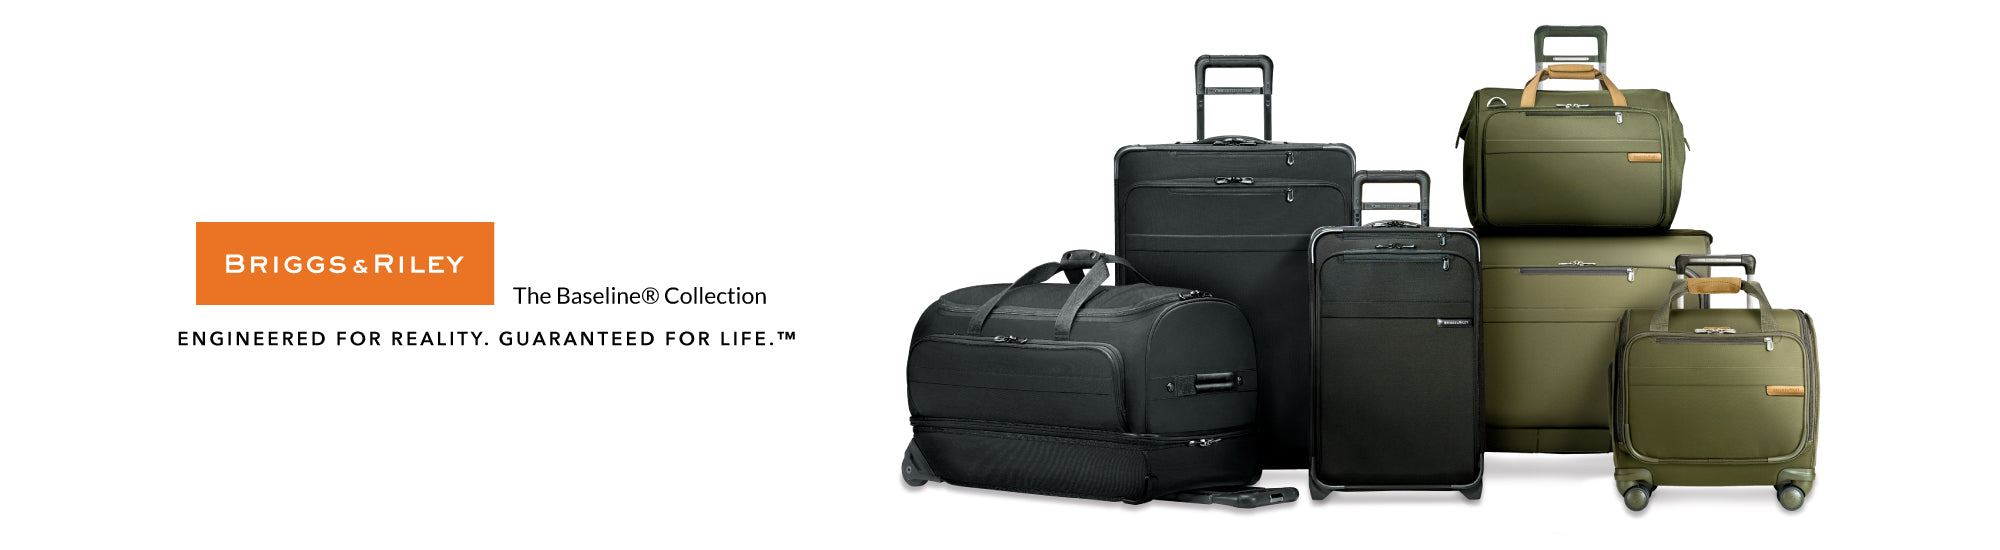 Briggs and Riley Baseline Luggage - Canada Luggage Depot